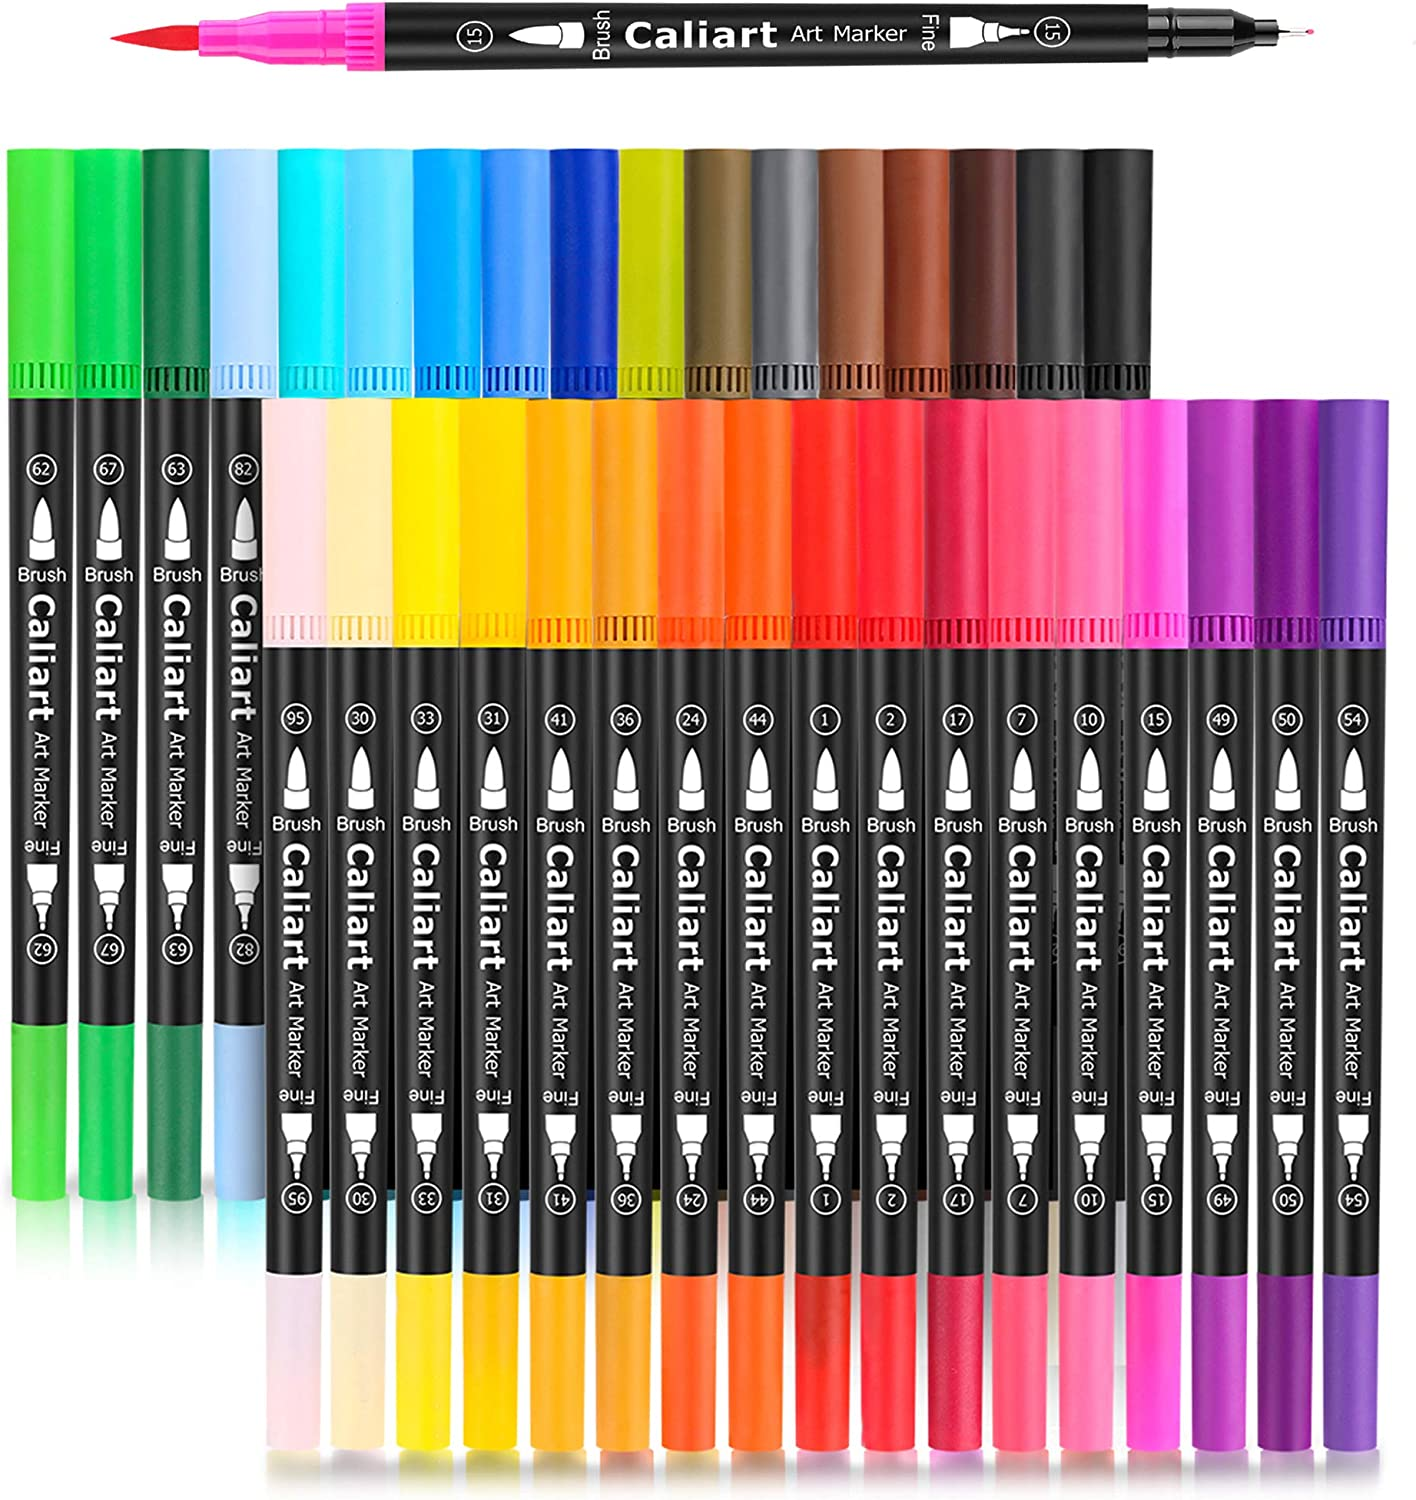 Caliart 34 Dual Brush Pens Art Markers, Artist Fine & Brush Tip Pen Coloring Markers for Kids Adult Coloring Book Bullet Journaling Note Taking Lettering Calligraphy Drawing Pens Craft Supplies